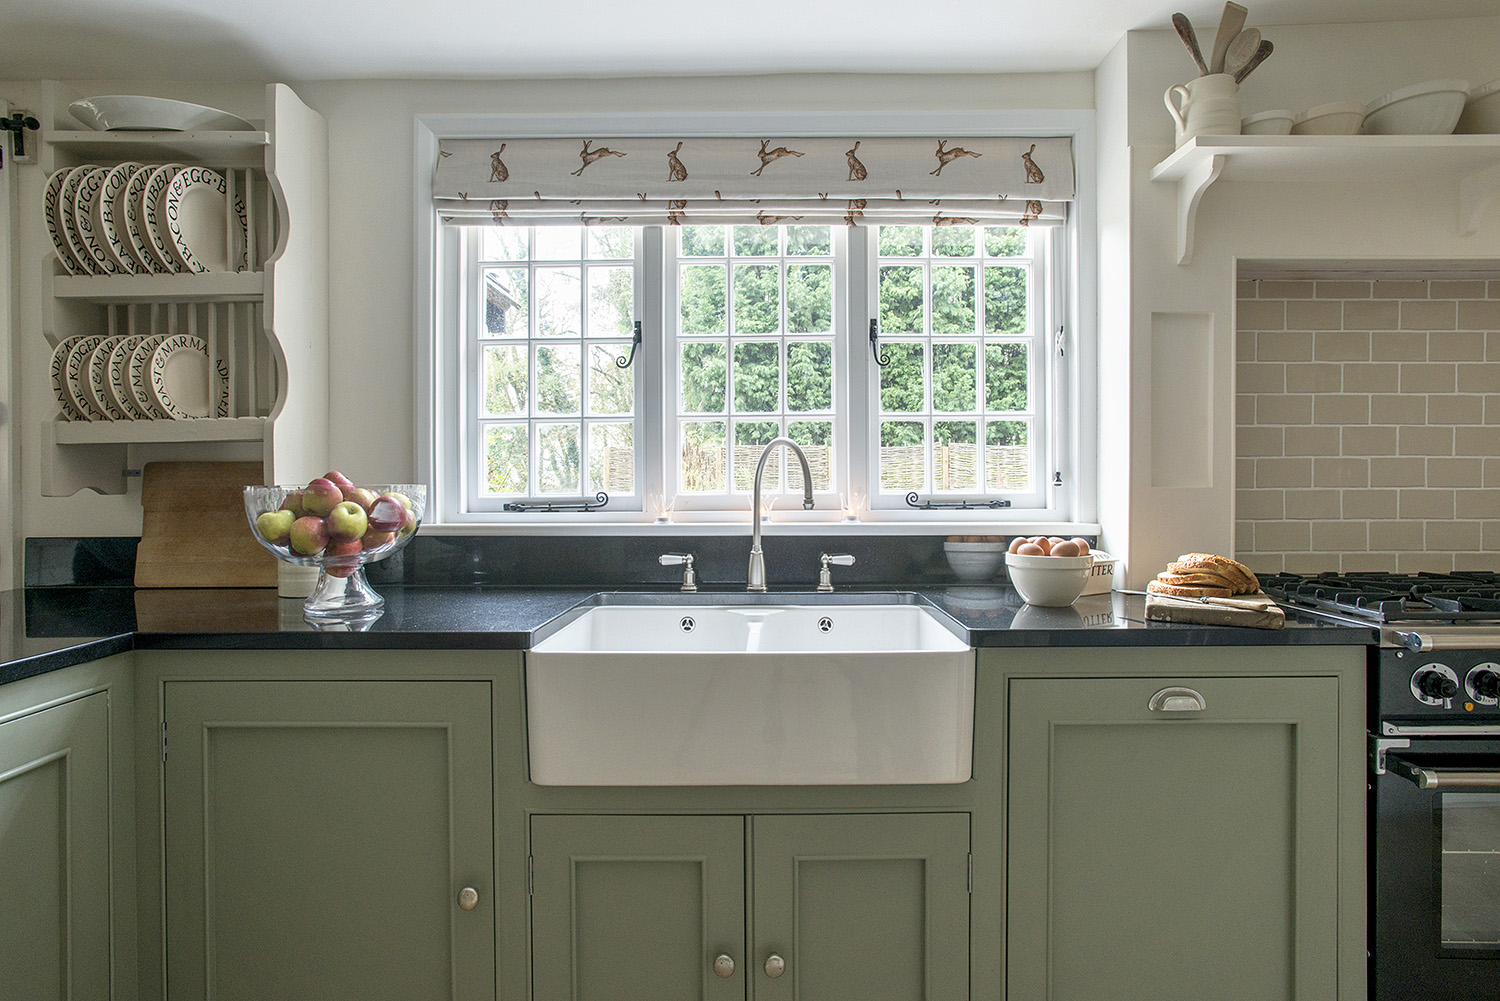 Farmhouse country kitchens design sussex surrey - Farmhouse style kitchen cabinets ...